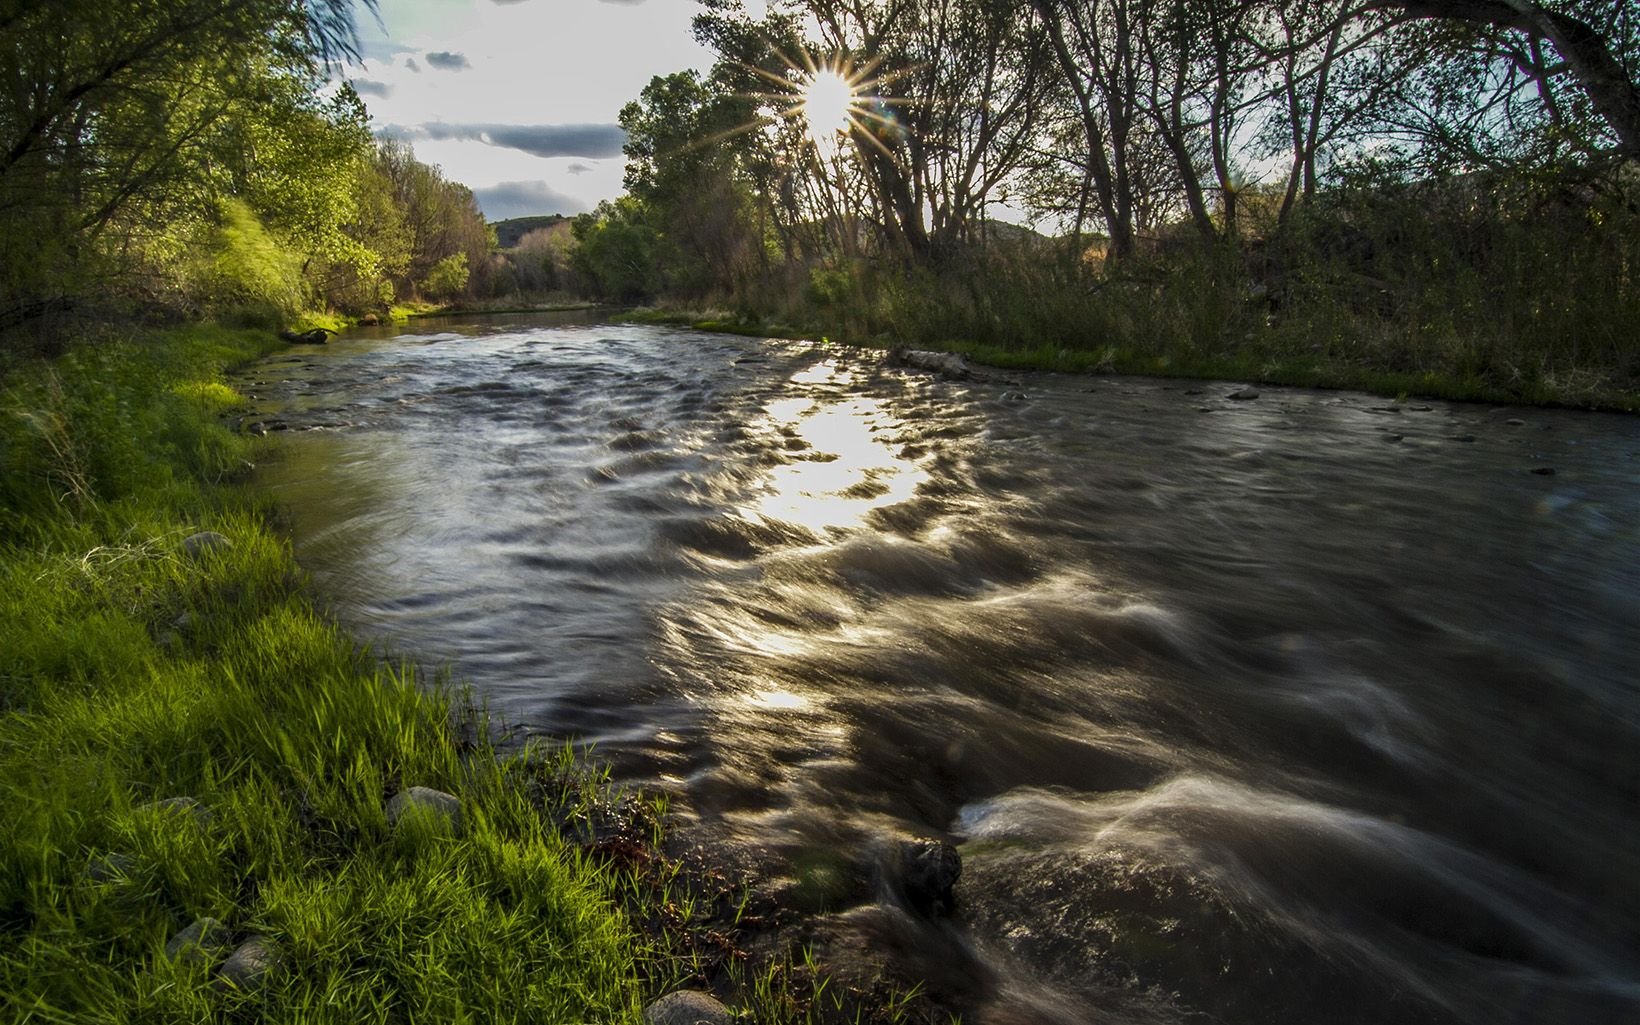 Fast-flowing river at sunset.